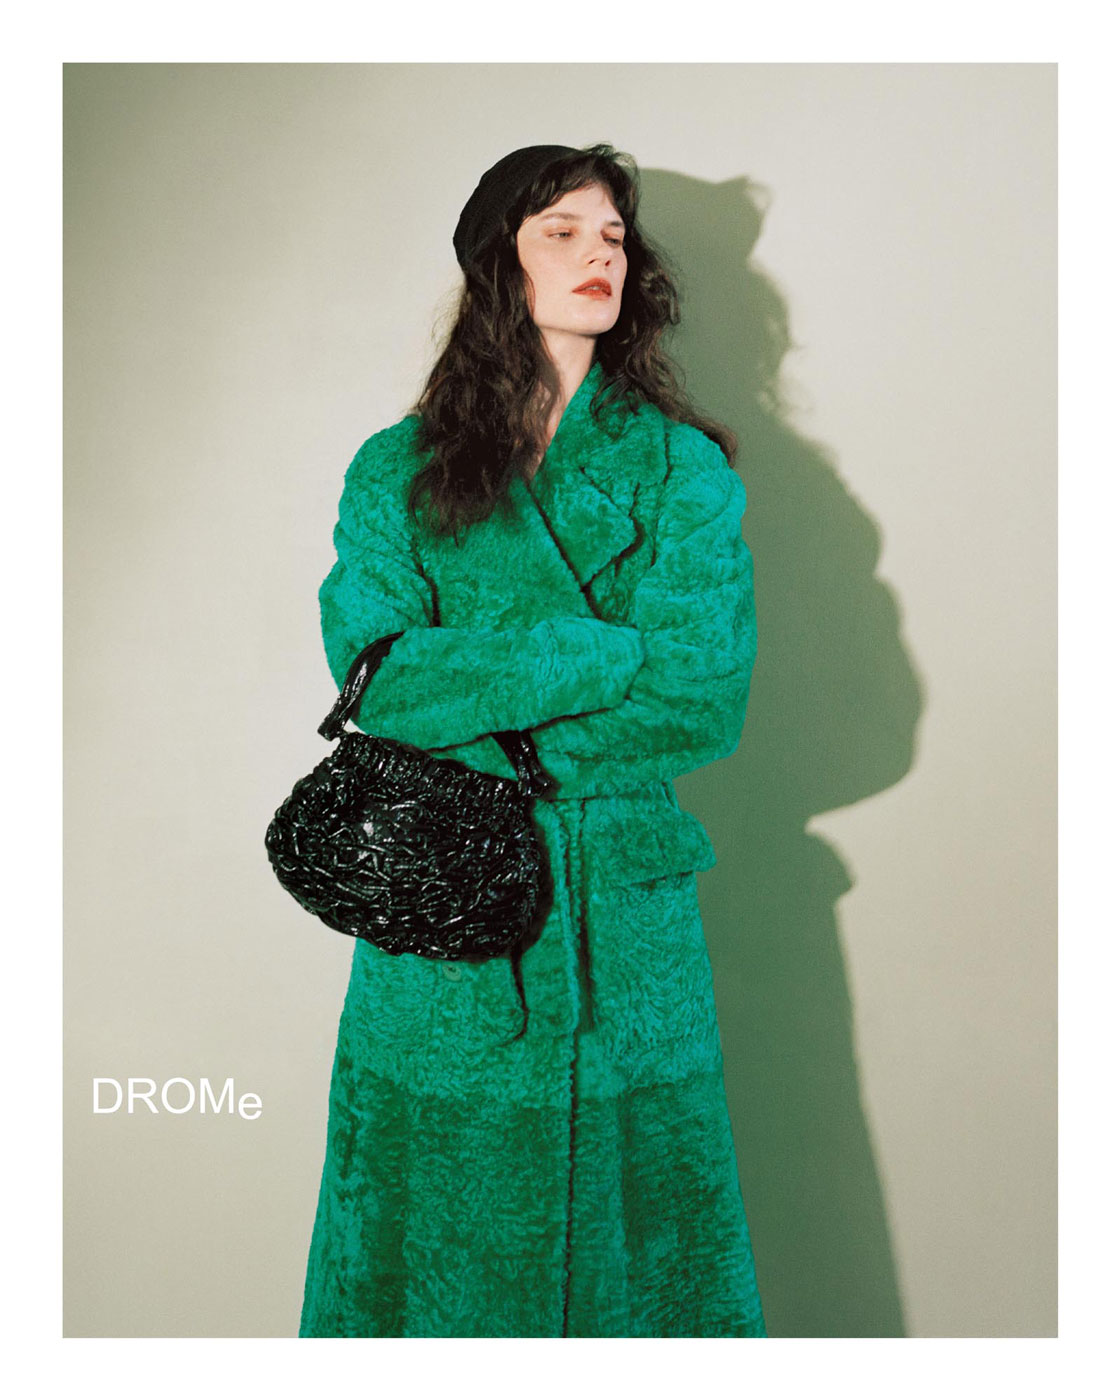 DROMe_AW19_Campaign-by-Daniele-Neu-presented-by-LE-MILE-Magazine-by-LE-MILE-Studios_1.jpg